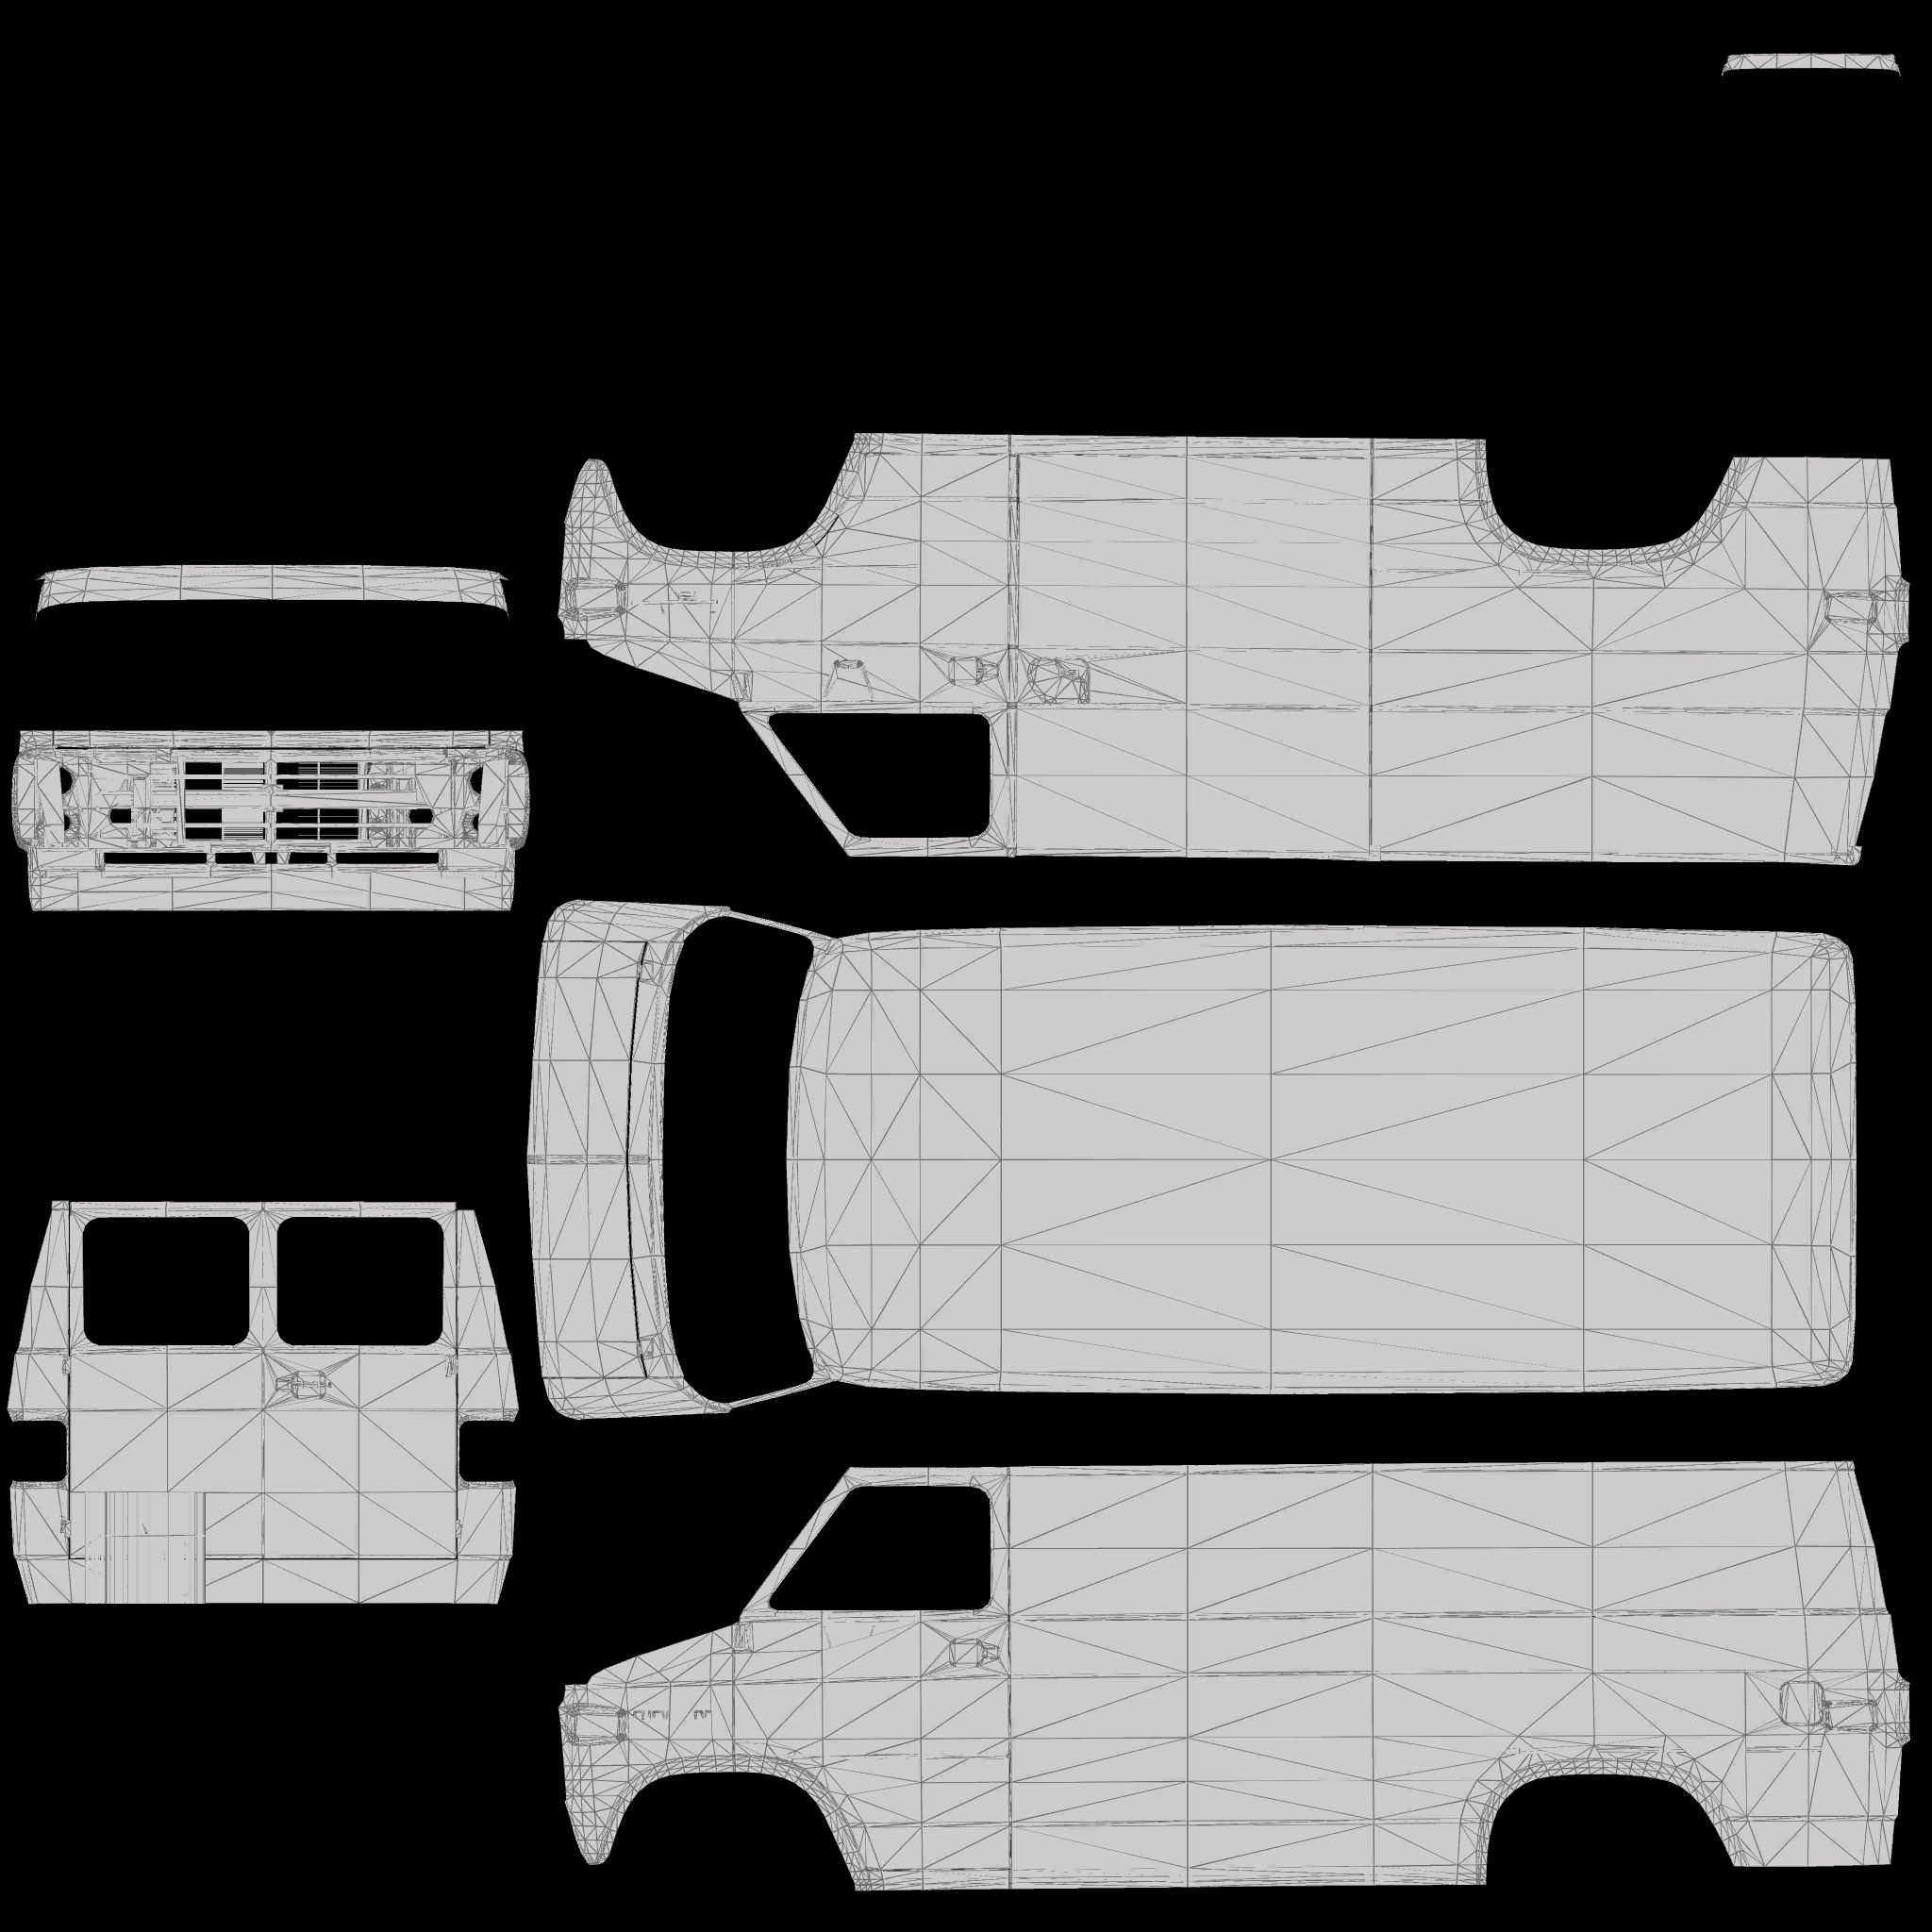 Chevrolet G20 Construction (Wipers)(Animated)(Template